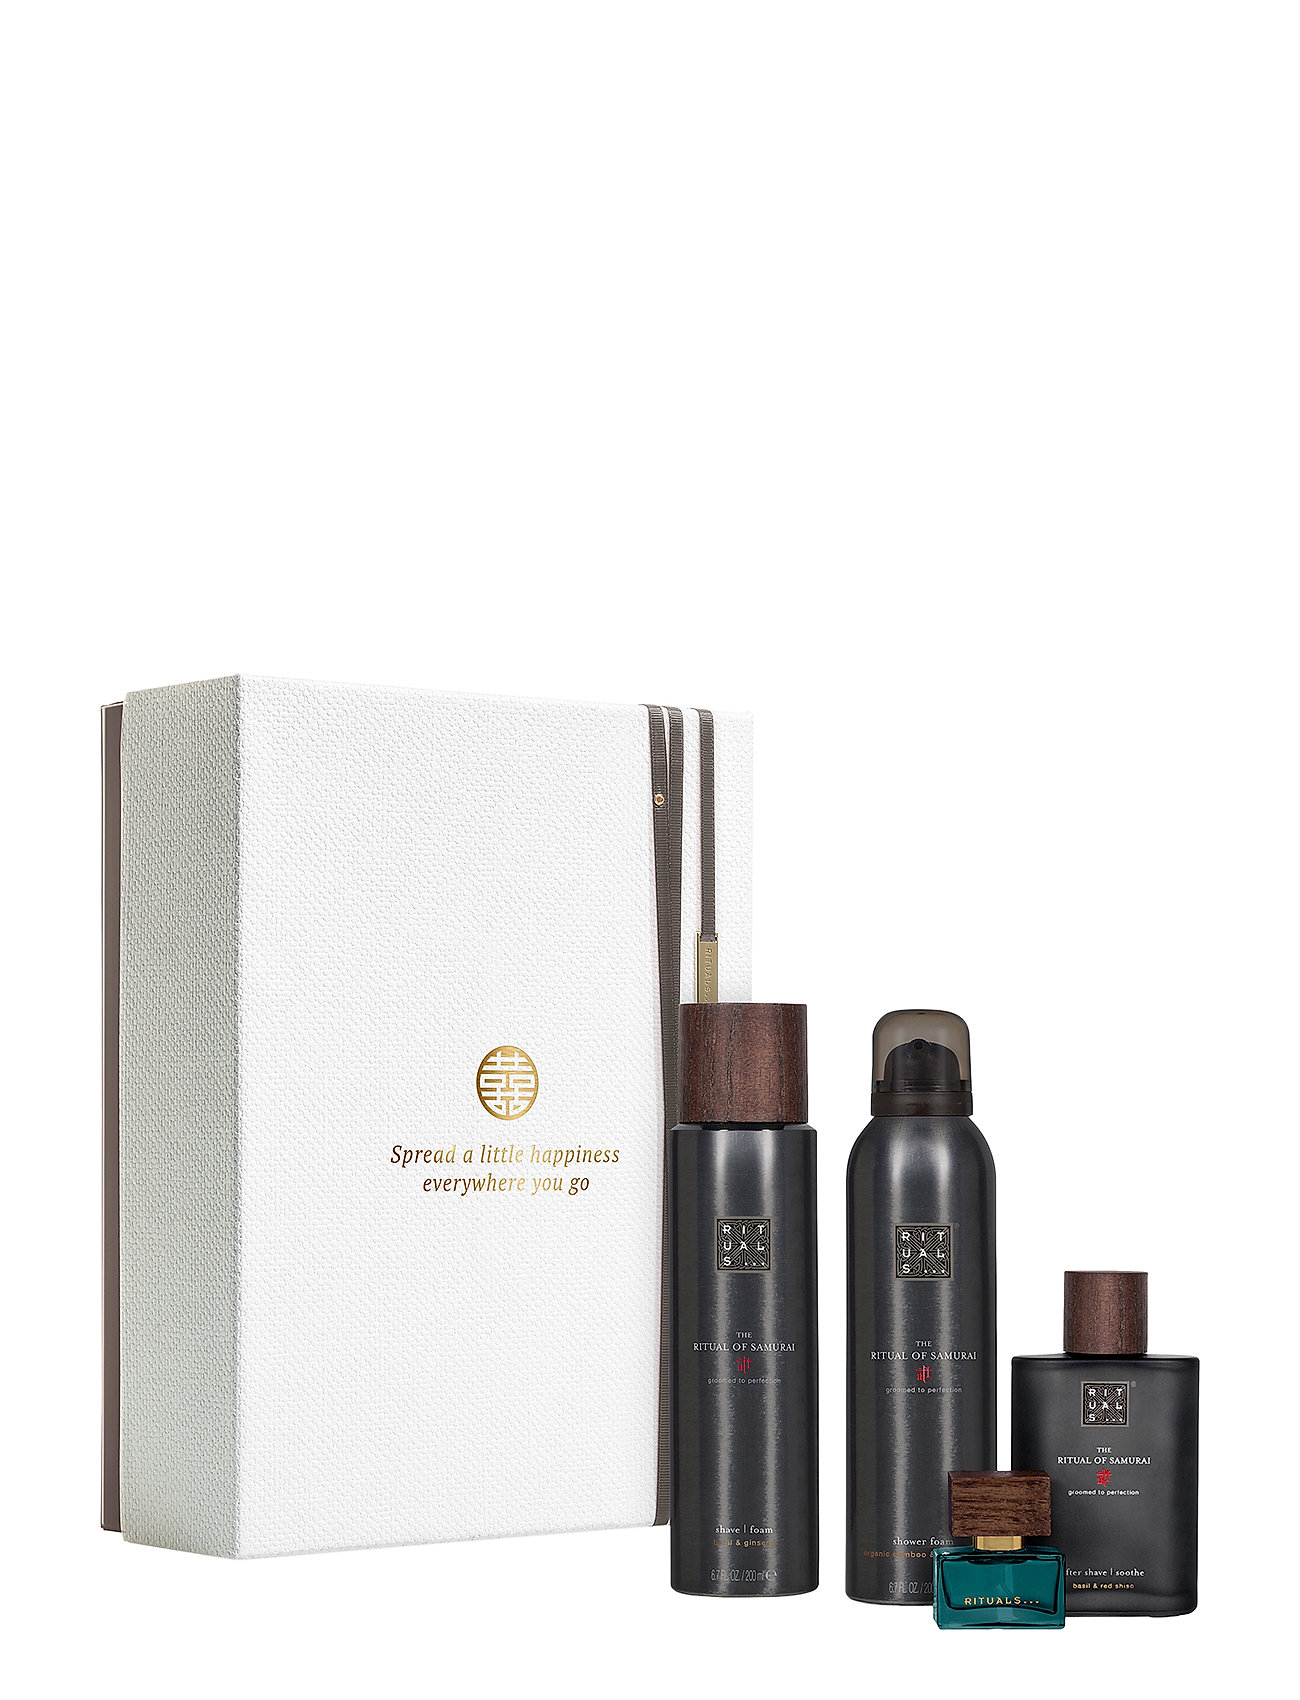 Image of The Ritual Of Samurai - Invigorating Collection Beauty MEN ALL SETS Rituals (3355824787)